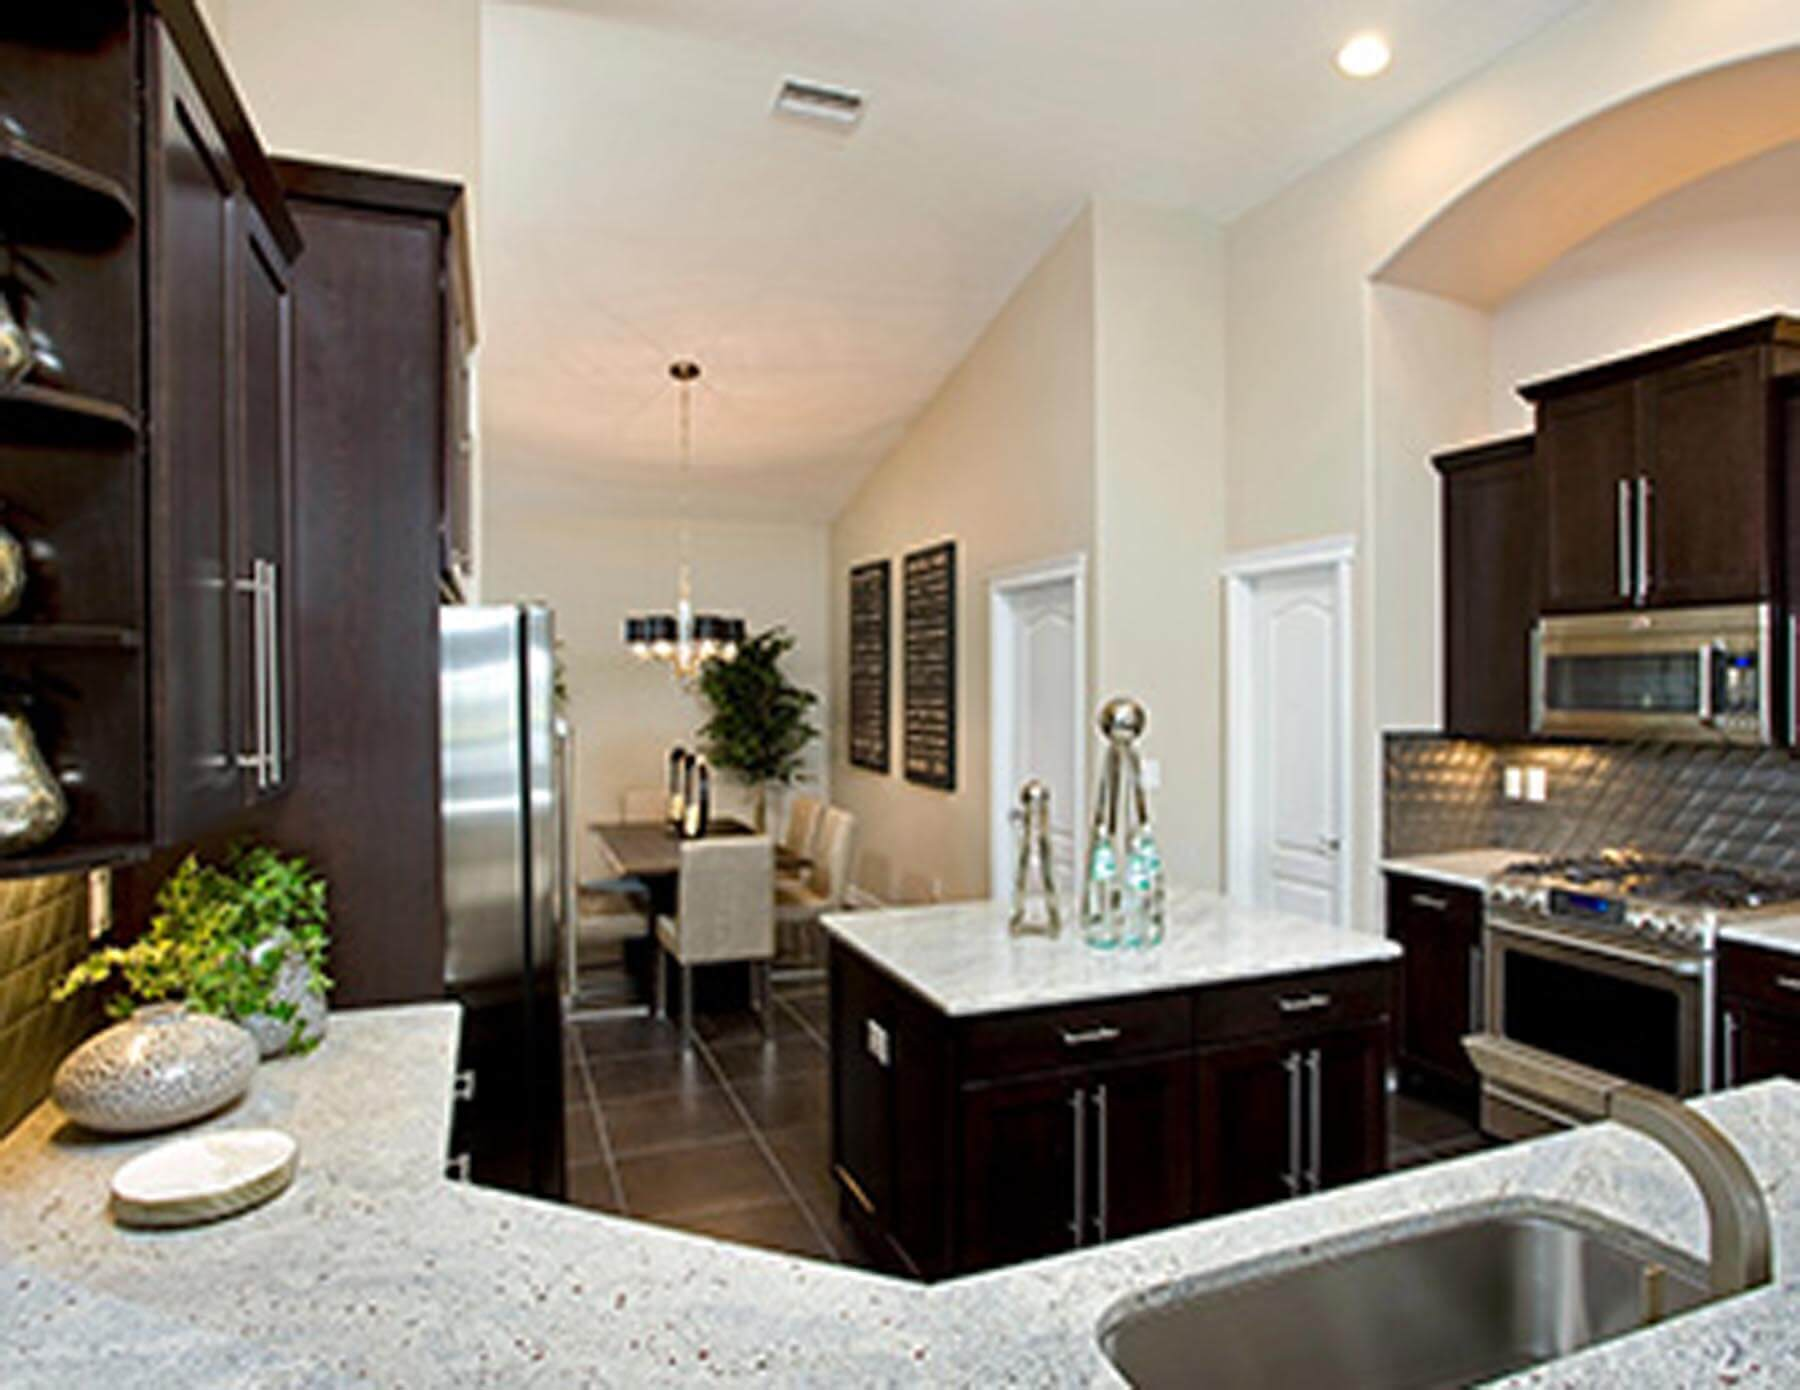 The Kingfisher 2 - 2,987 sq ft - 4 bedrooms - 2 Bathrooms -  Visit this home in Forest Park  - Cardel Homes Tampa